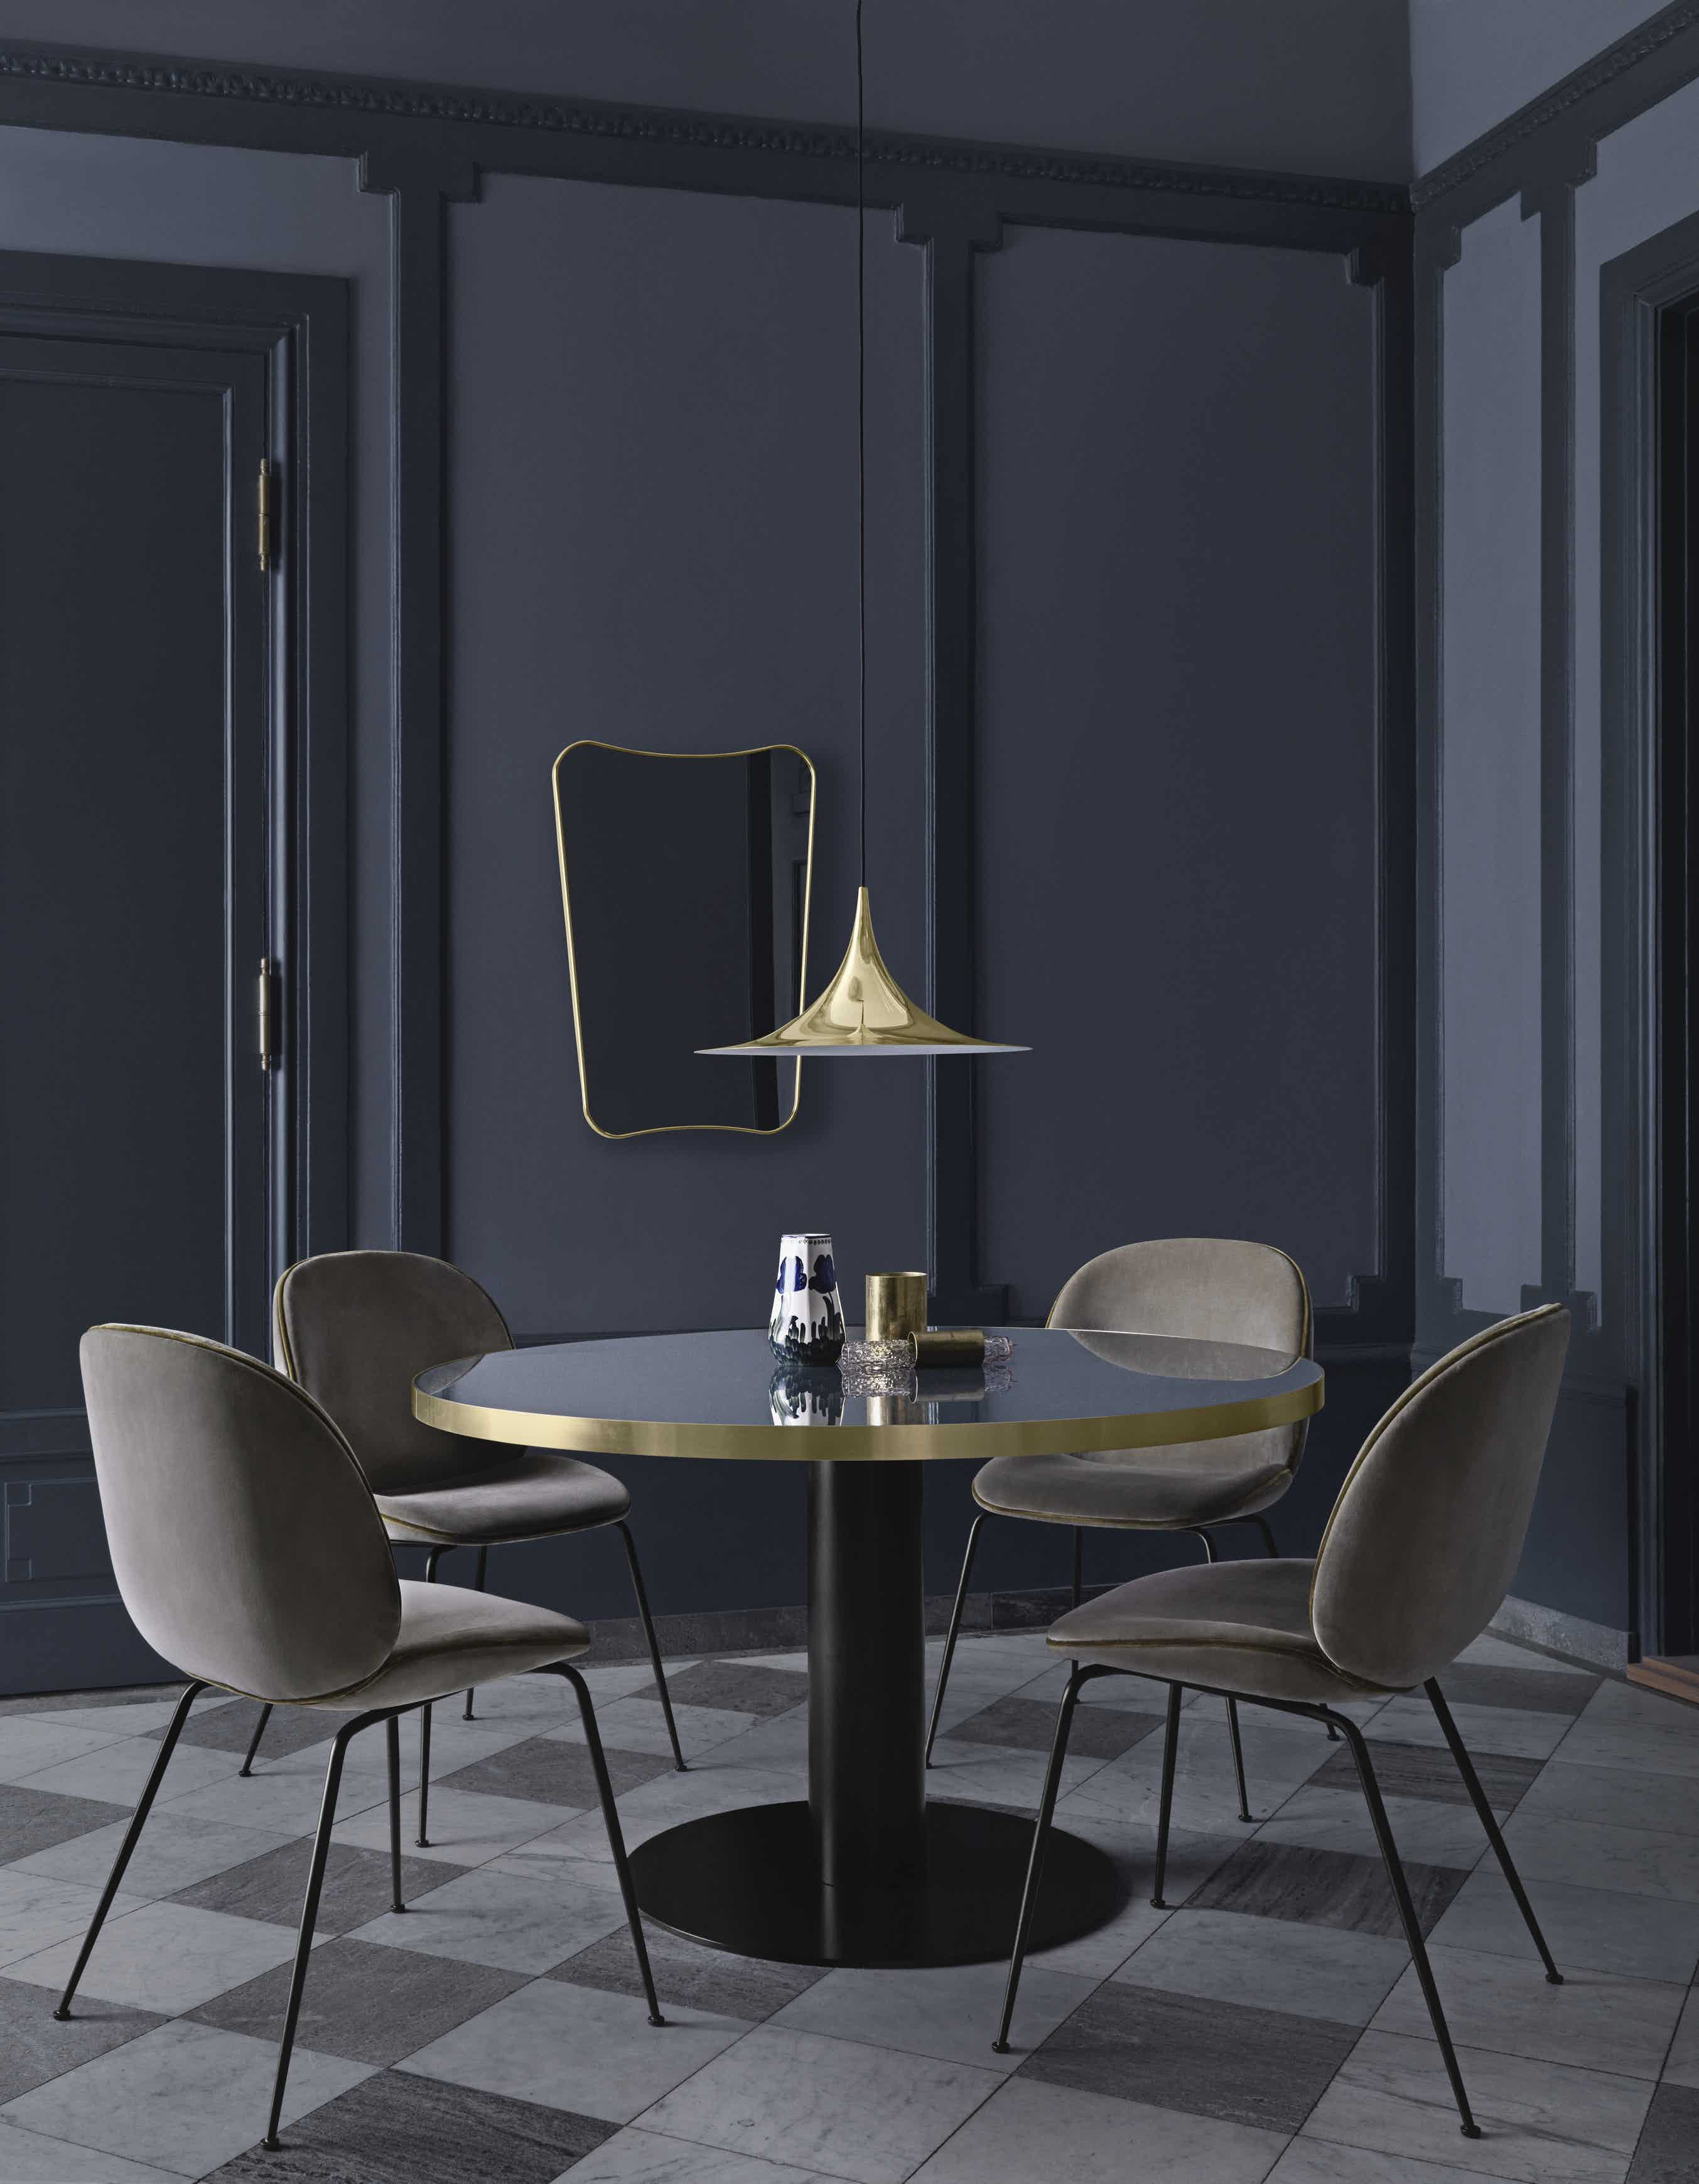 Beetle Dining Chair Fully Upholstered Conic Base GUBI2 0 Dining Table Semi Pendant FA33 Wall Mirror